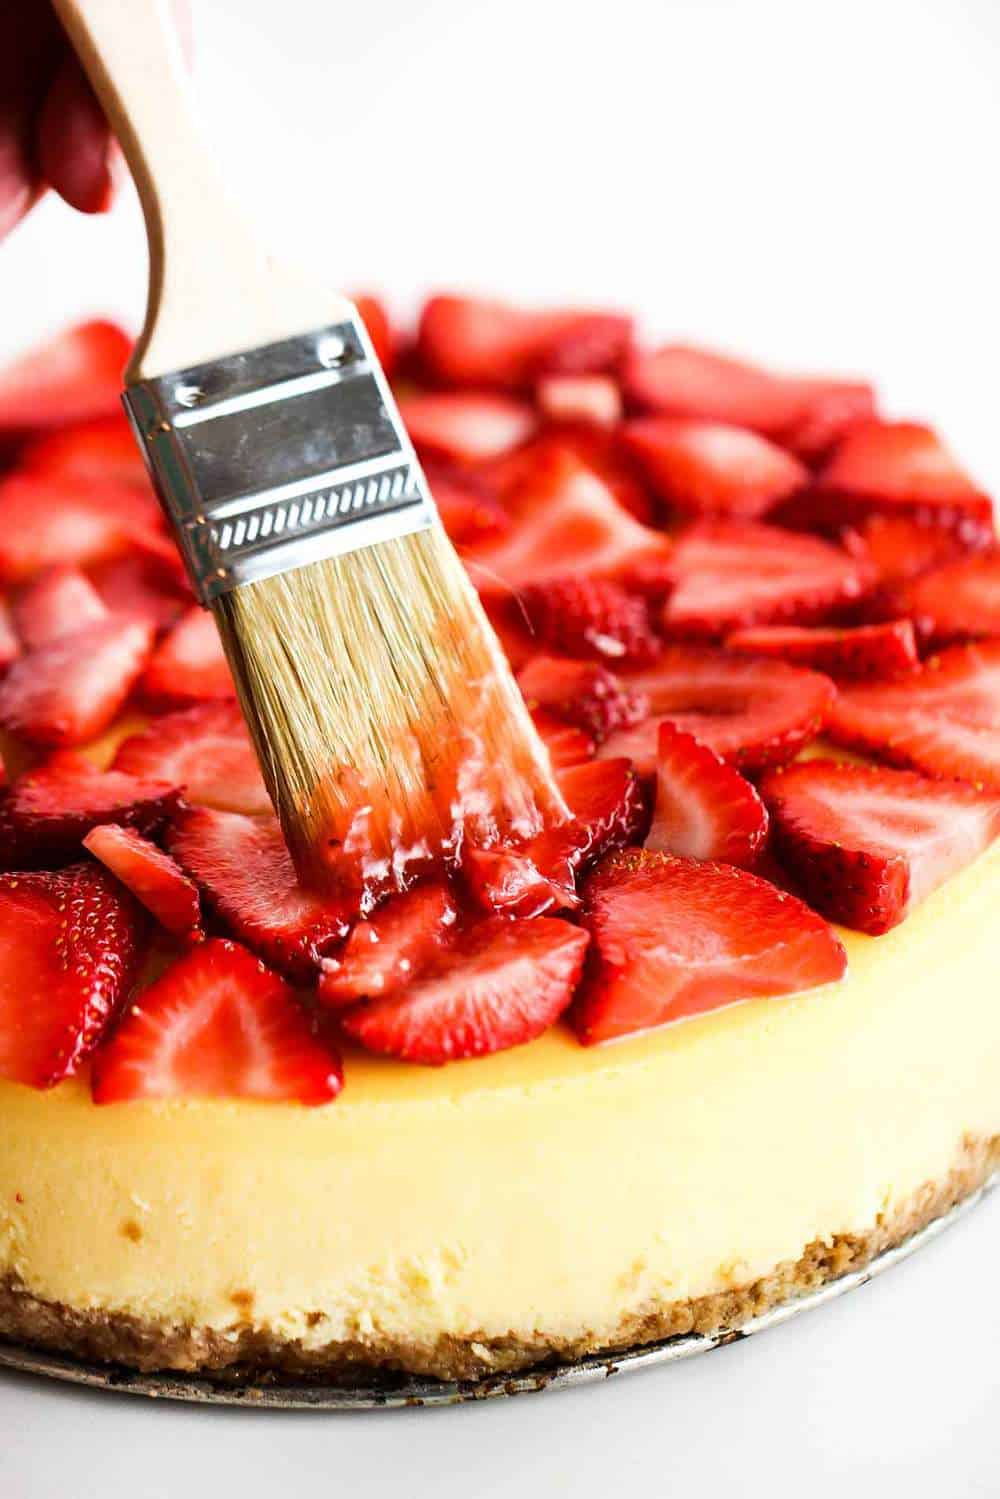 Brush applying a strawberry glaze on top of a New York cheese cake.